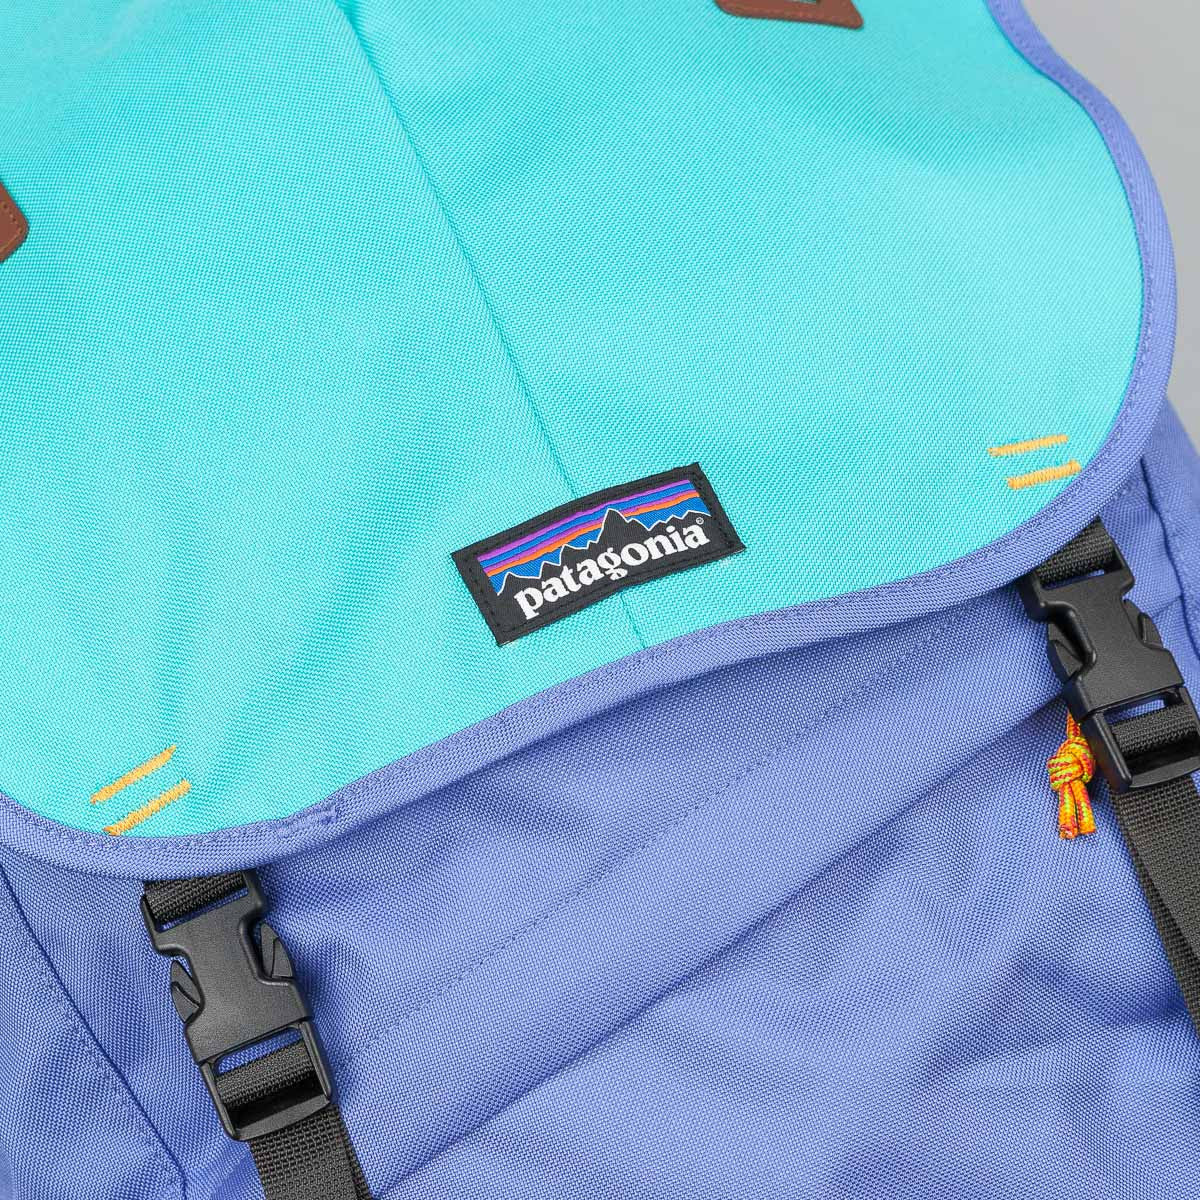 Patagonia Arbor Backpack - Violet Blue